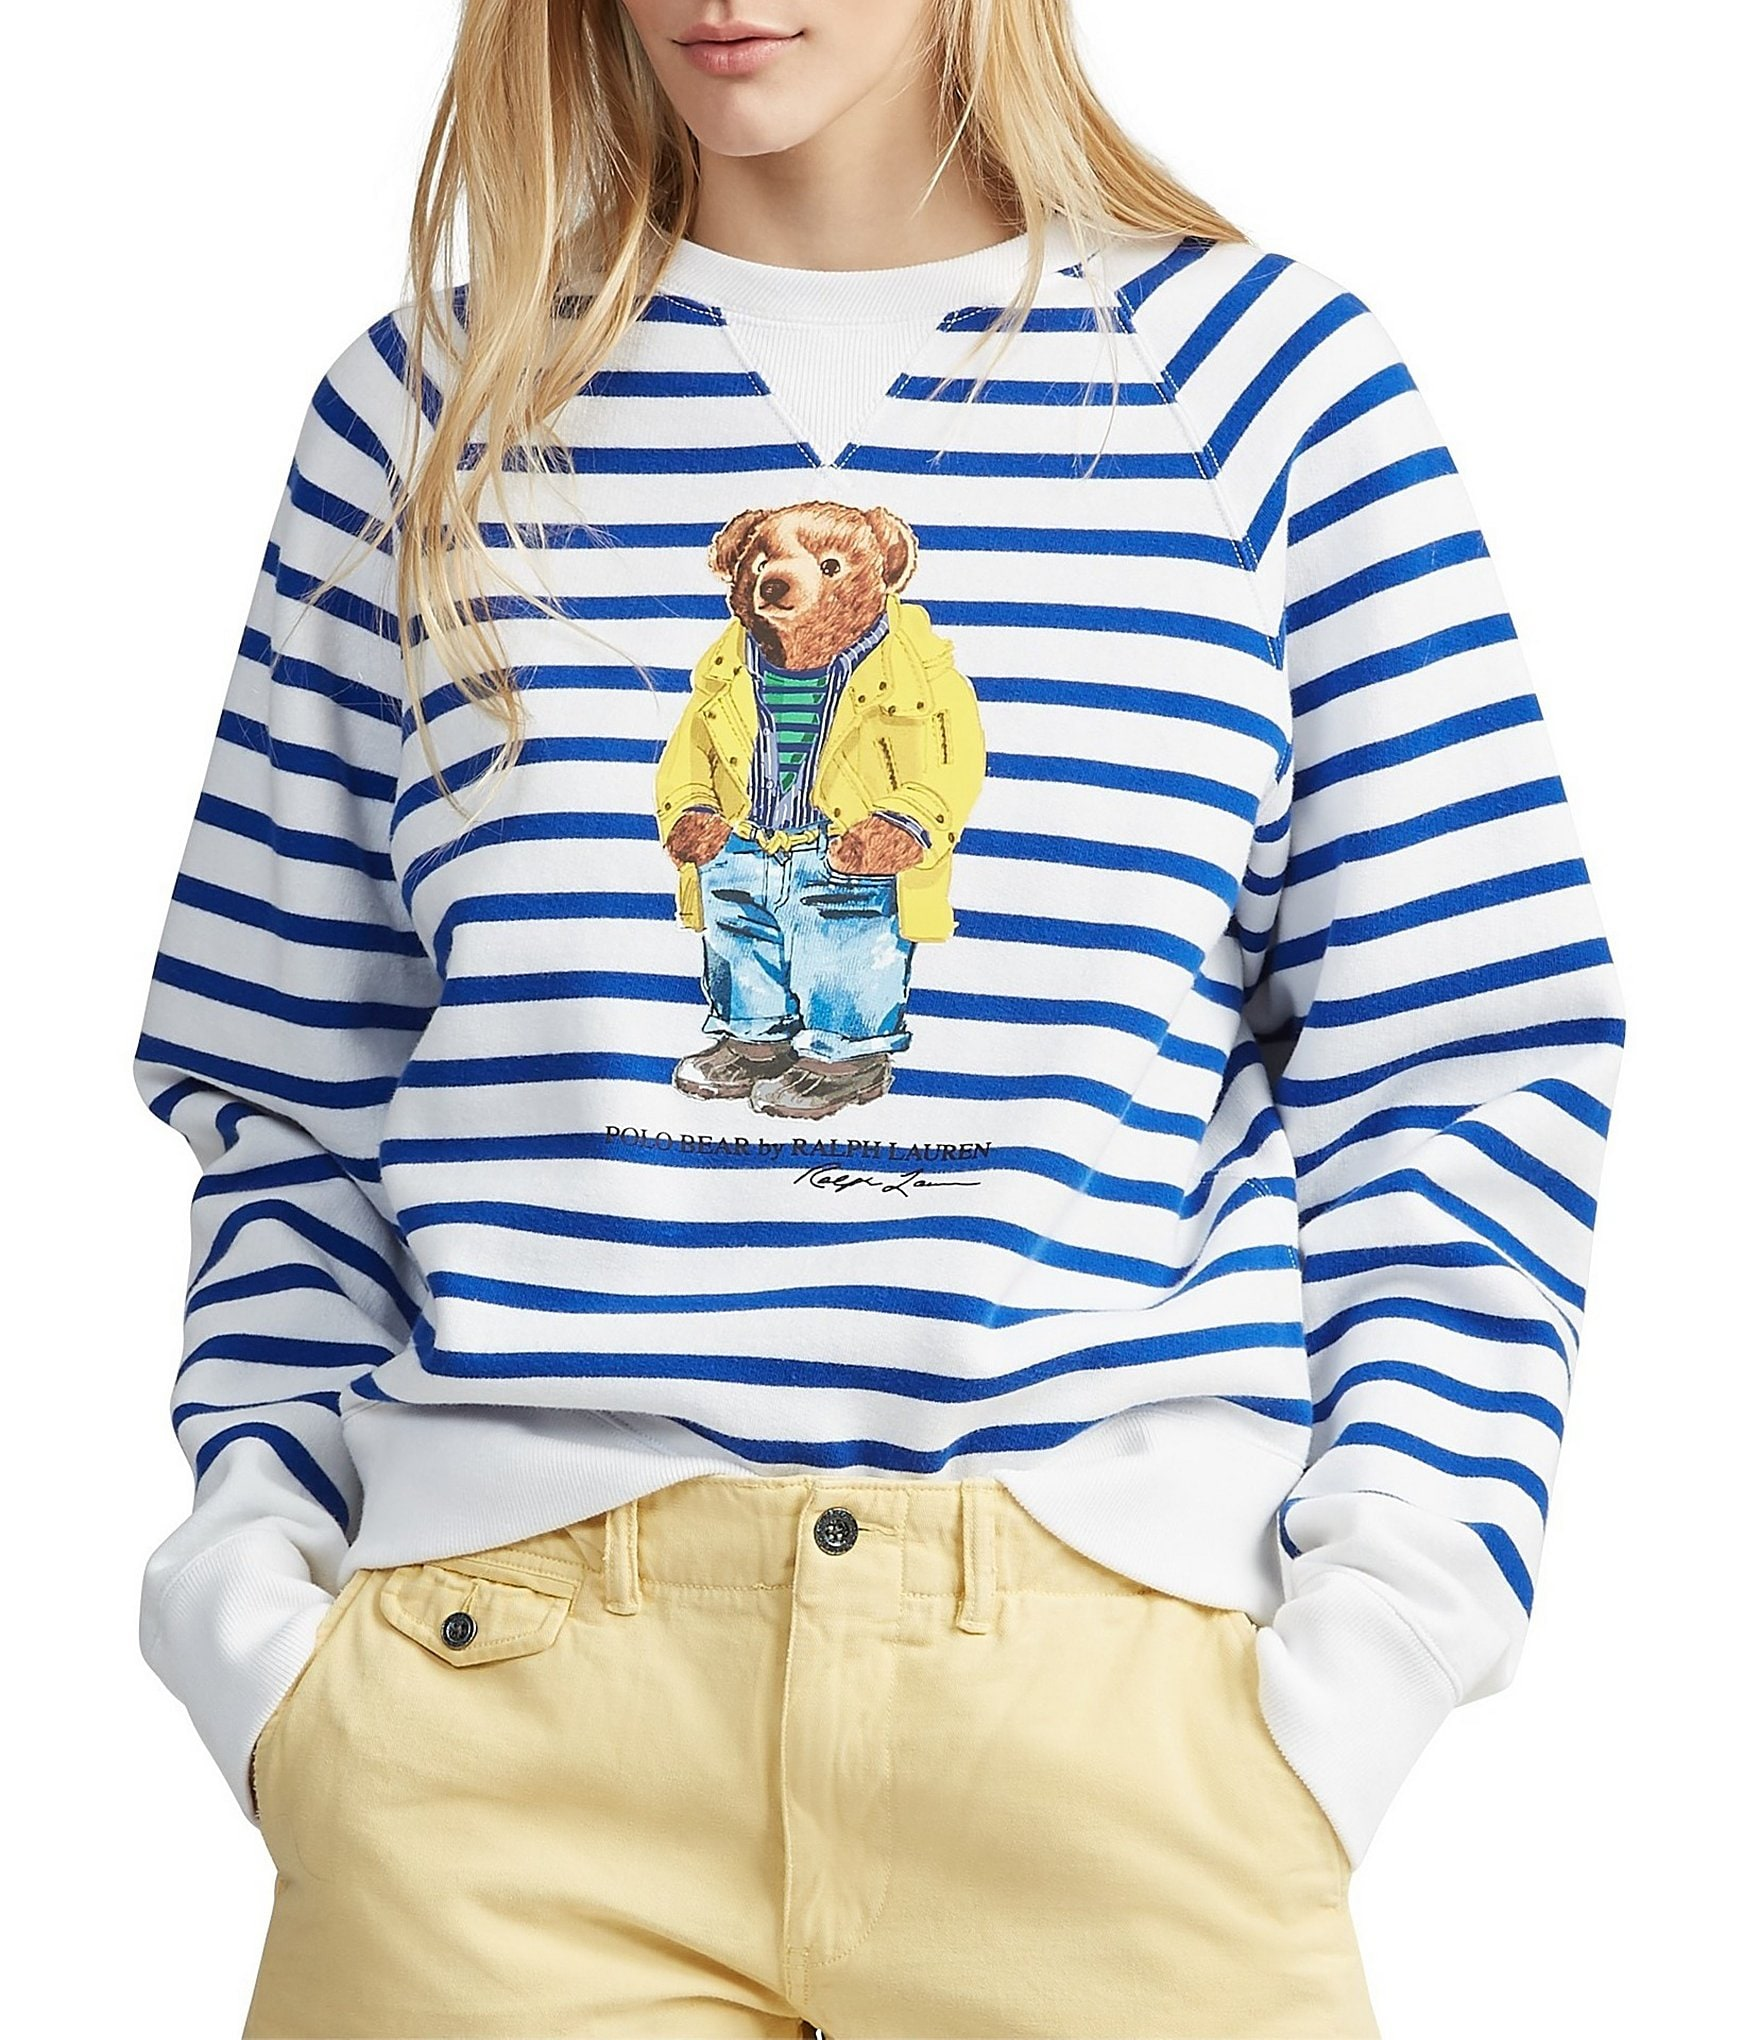 ae961f020 Polo Ralph Lauren Women s Clothing